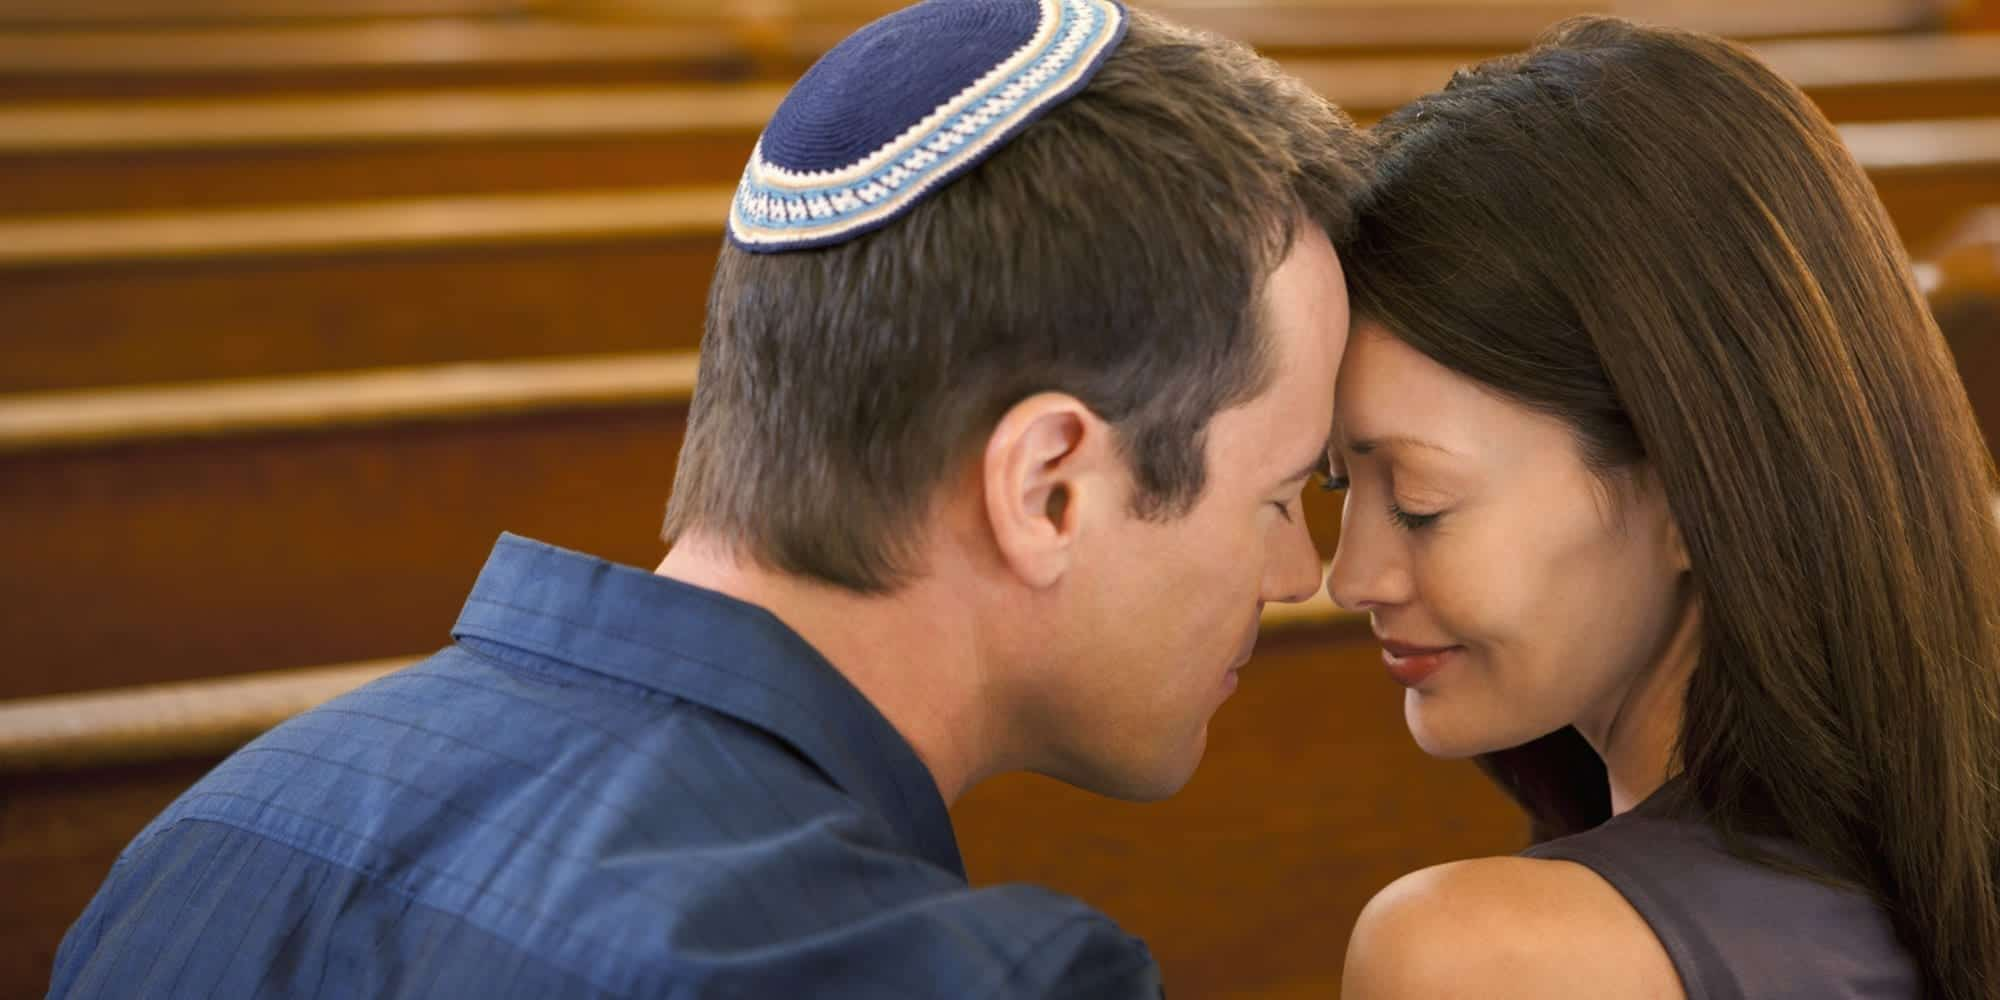 o-JEWISH-COUPLE-facebook 50 Romantic Jewish Couples-Wedding and Relationship Photos